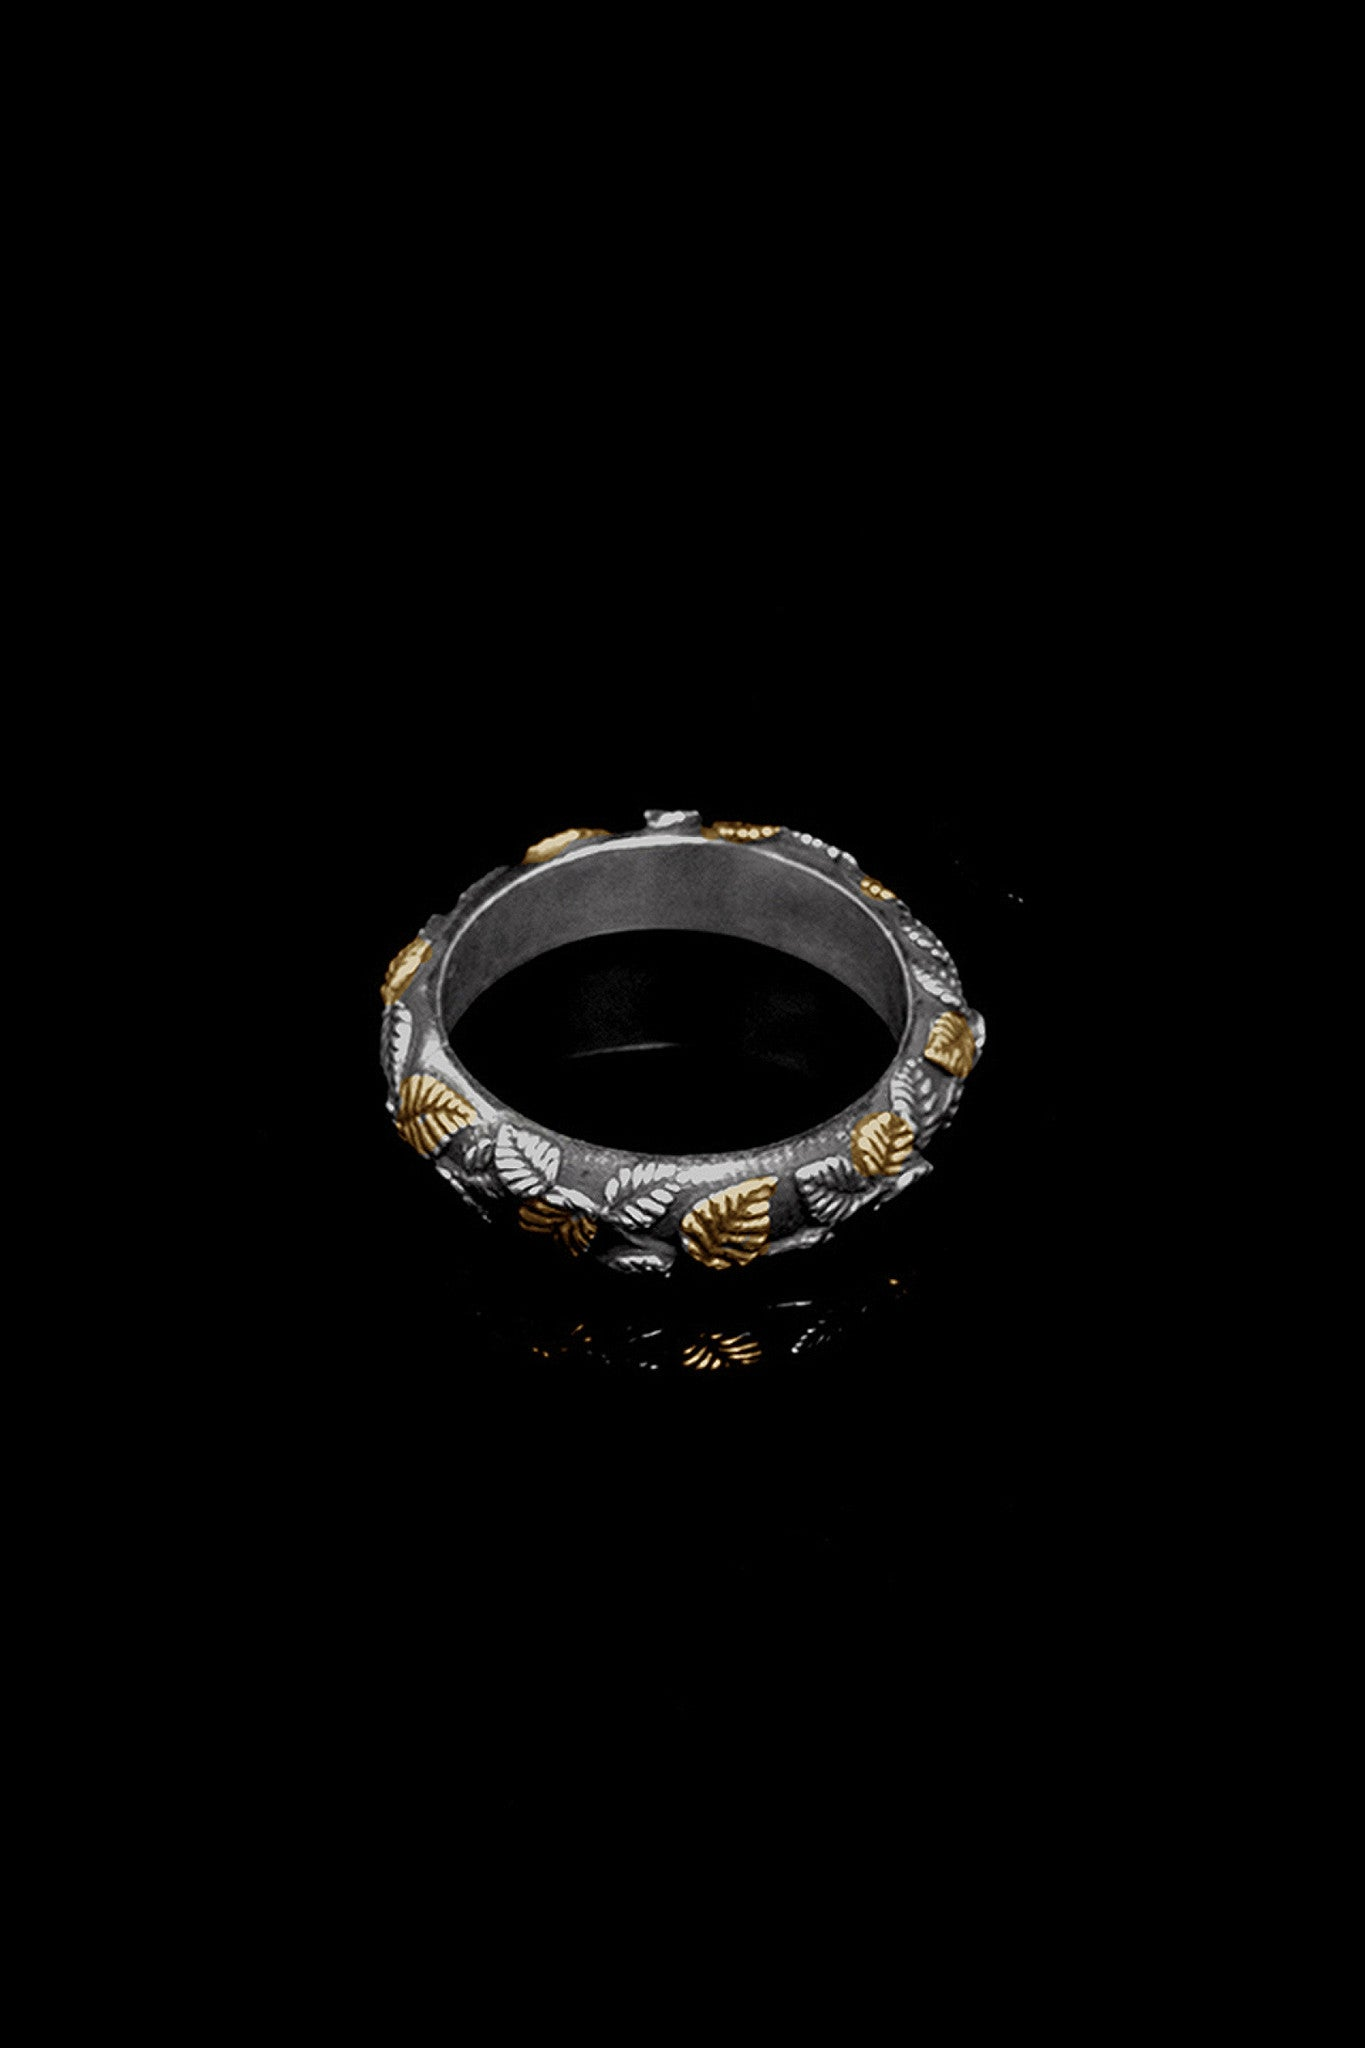 Ugo Cacciatori, Gold, Jewelry, 9kt Gold + Sterling Silver, Ring, Gold + SIlver